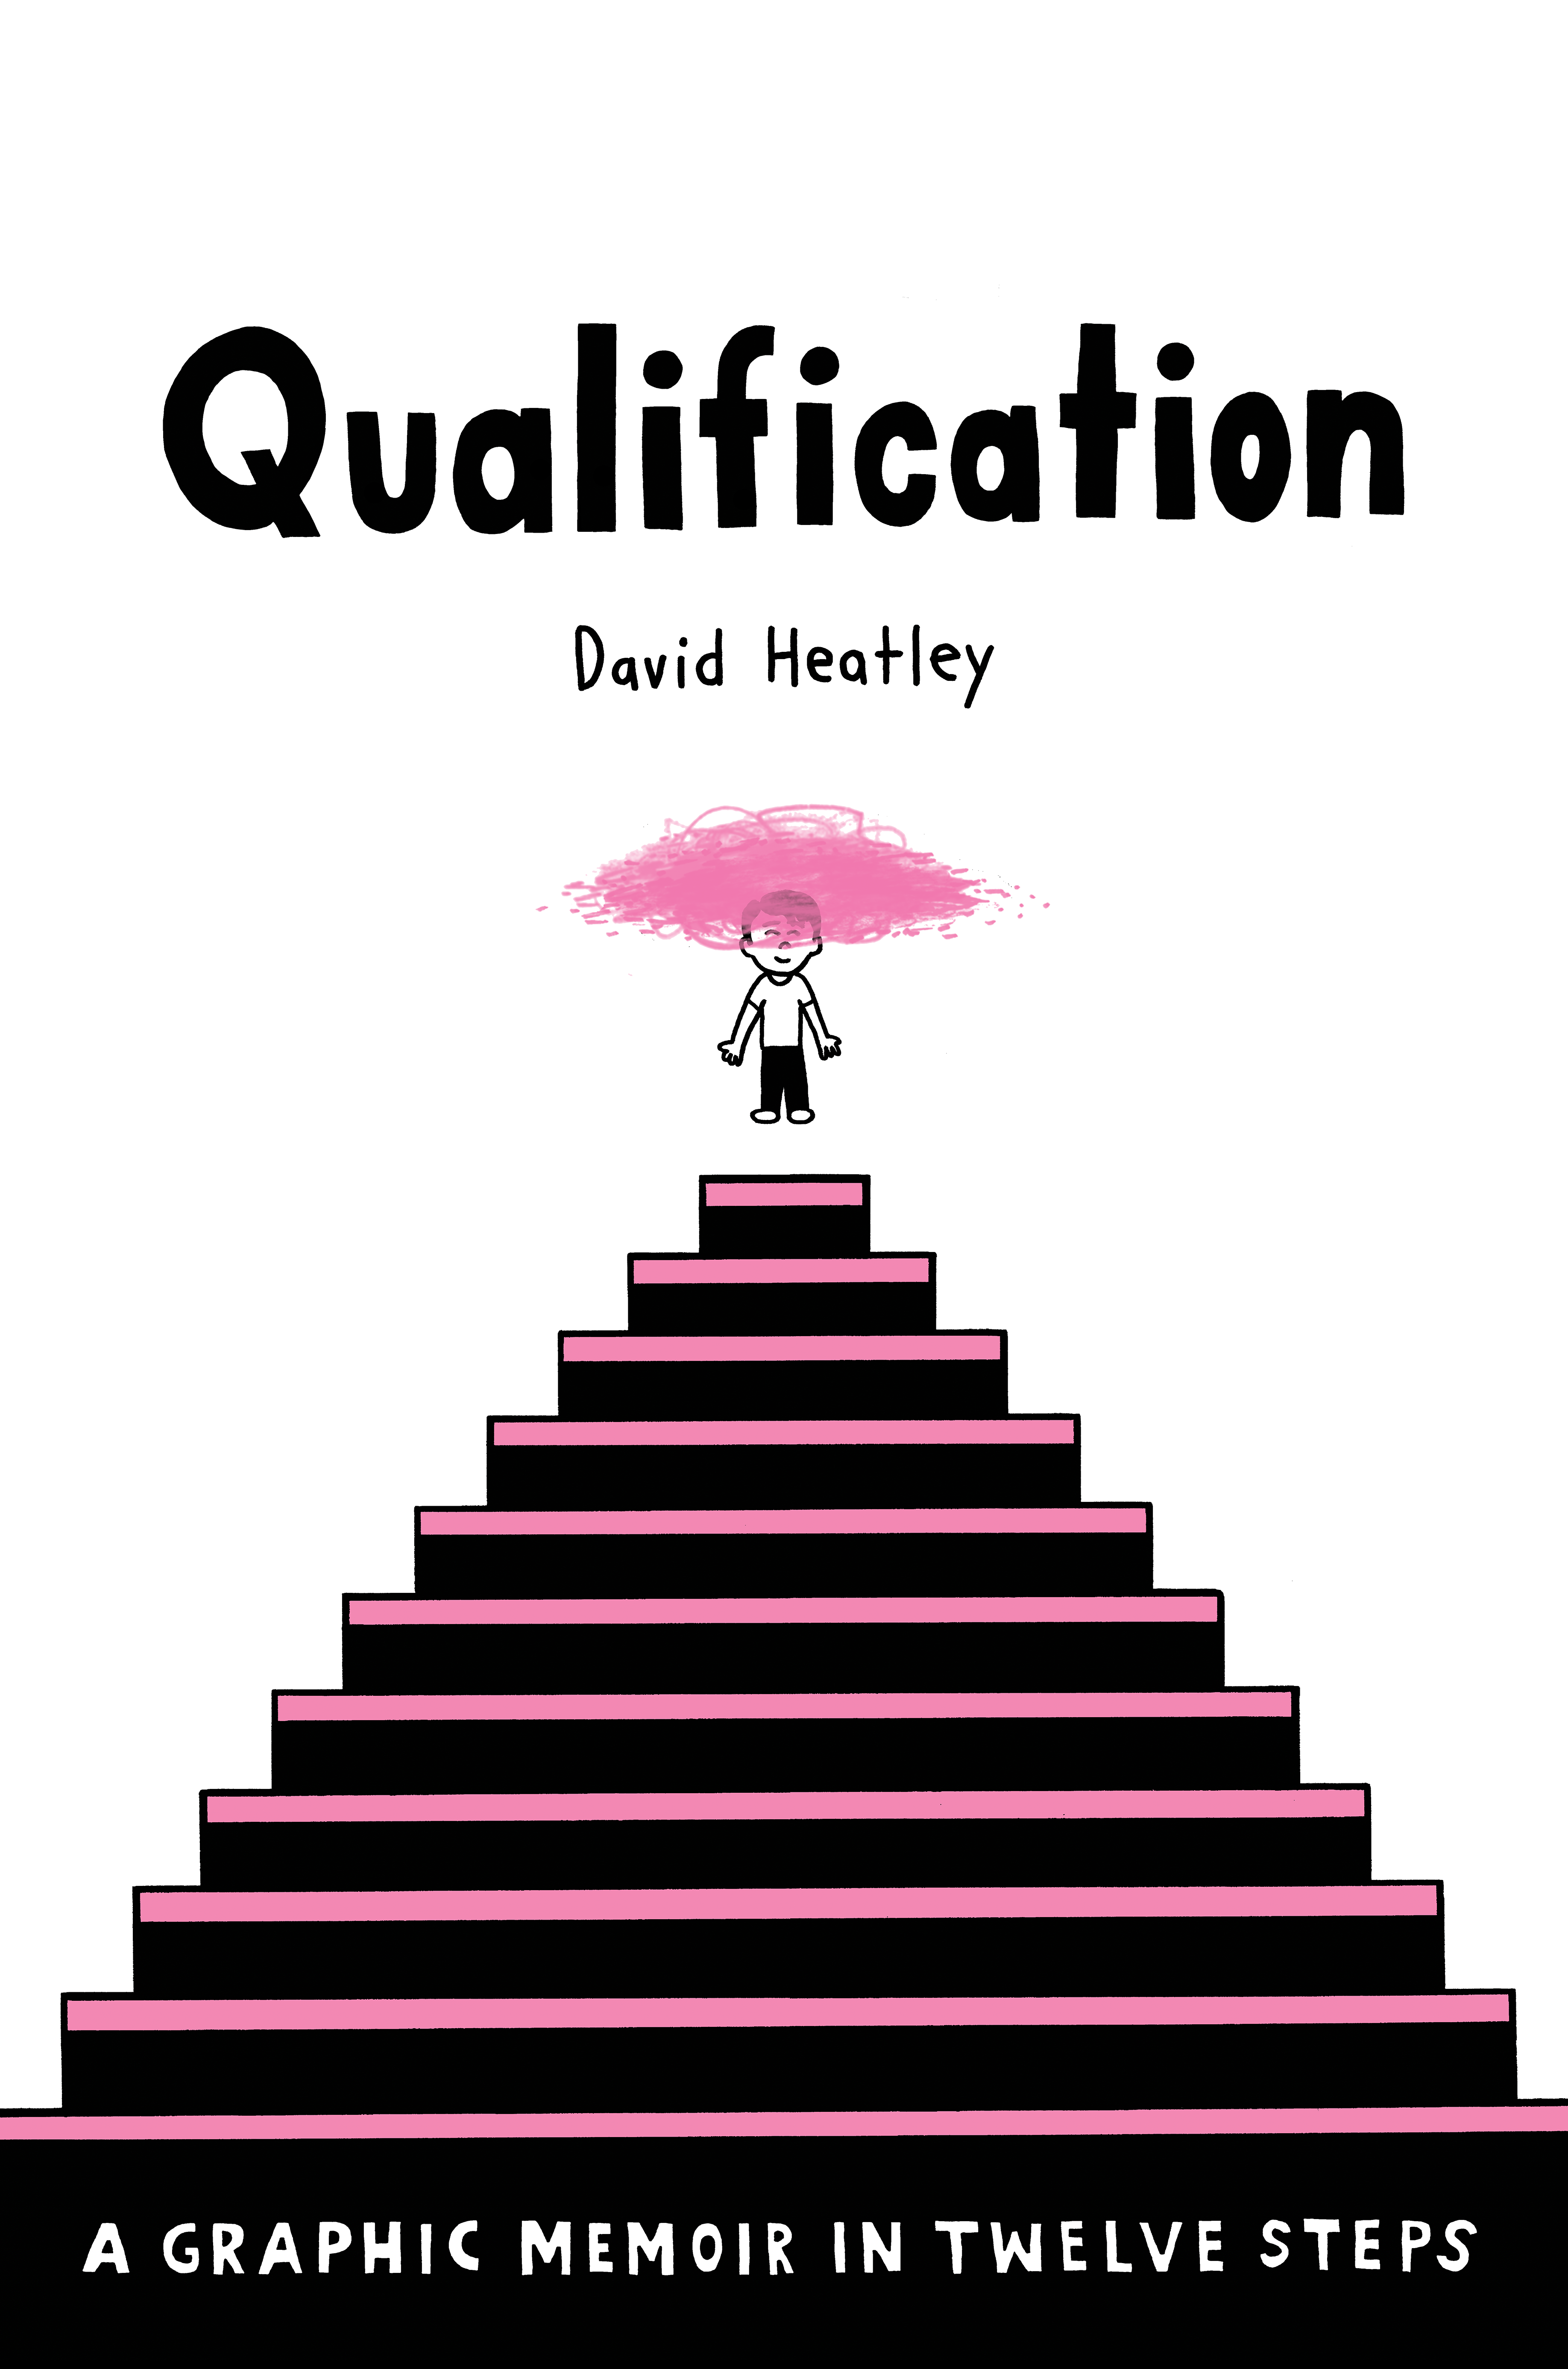 Book Launch: Qualification by David Heatley in conversation with Liana Finck